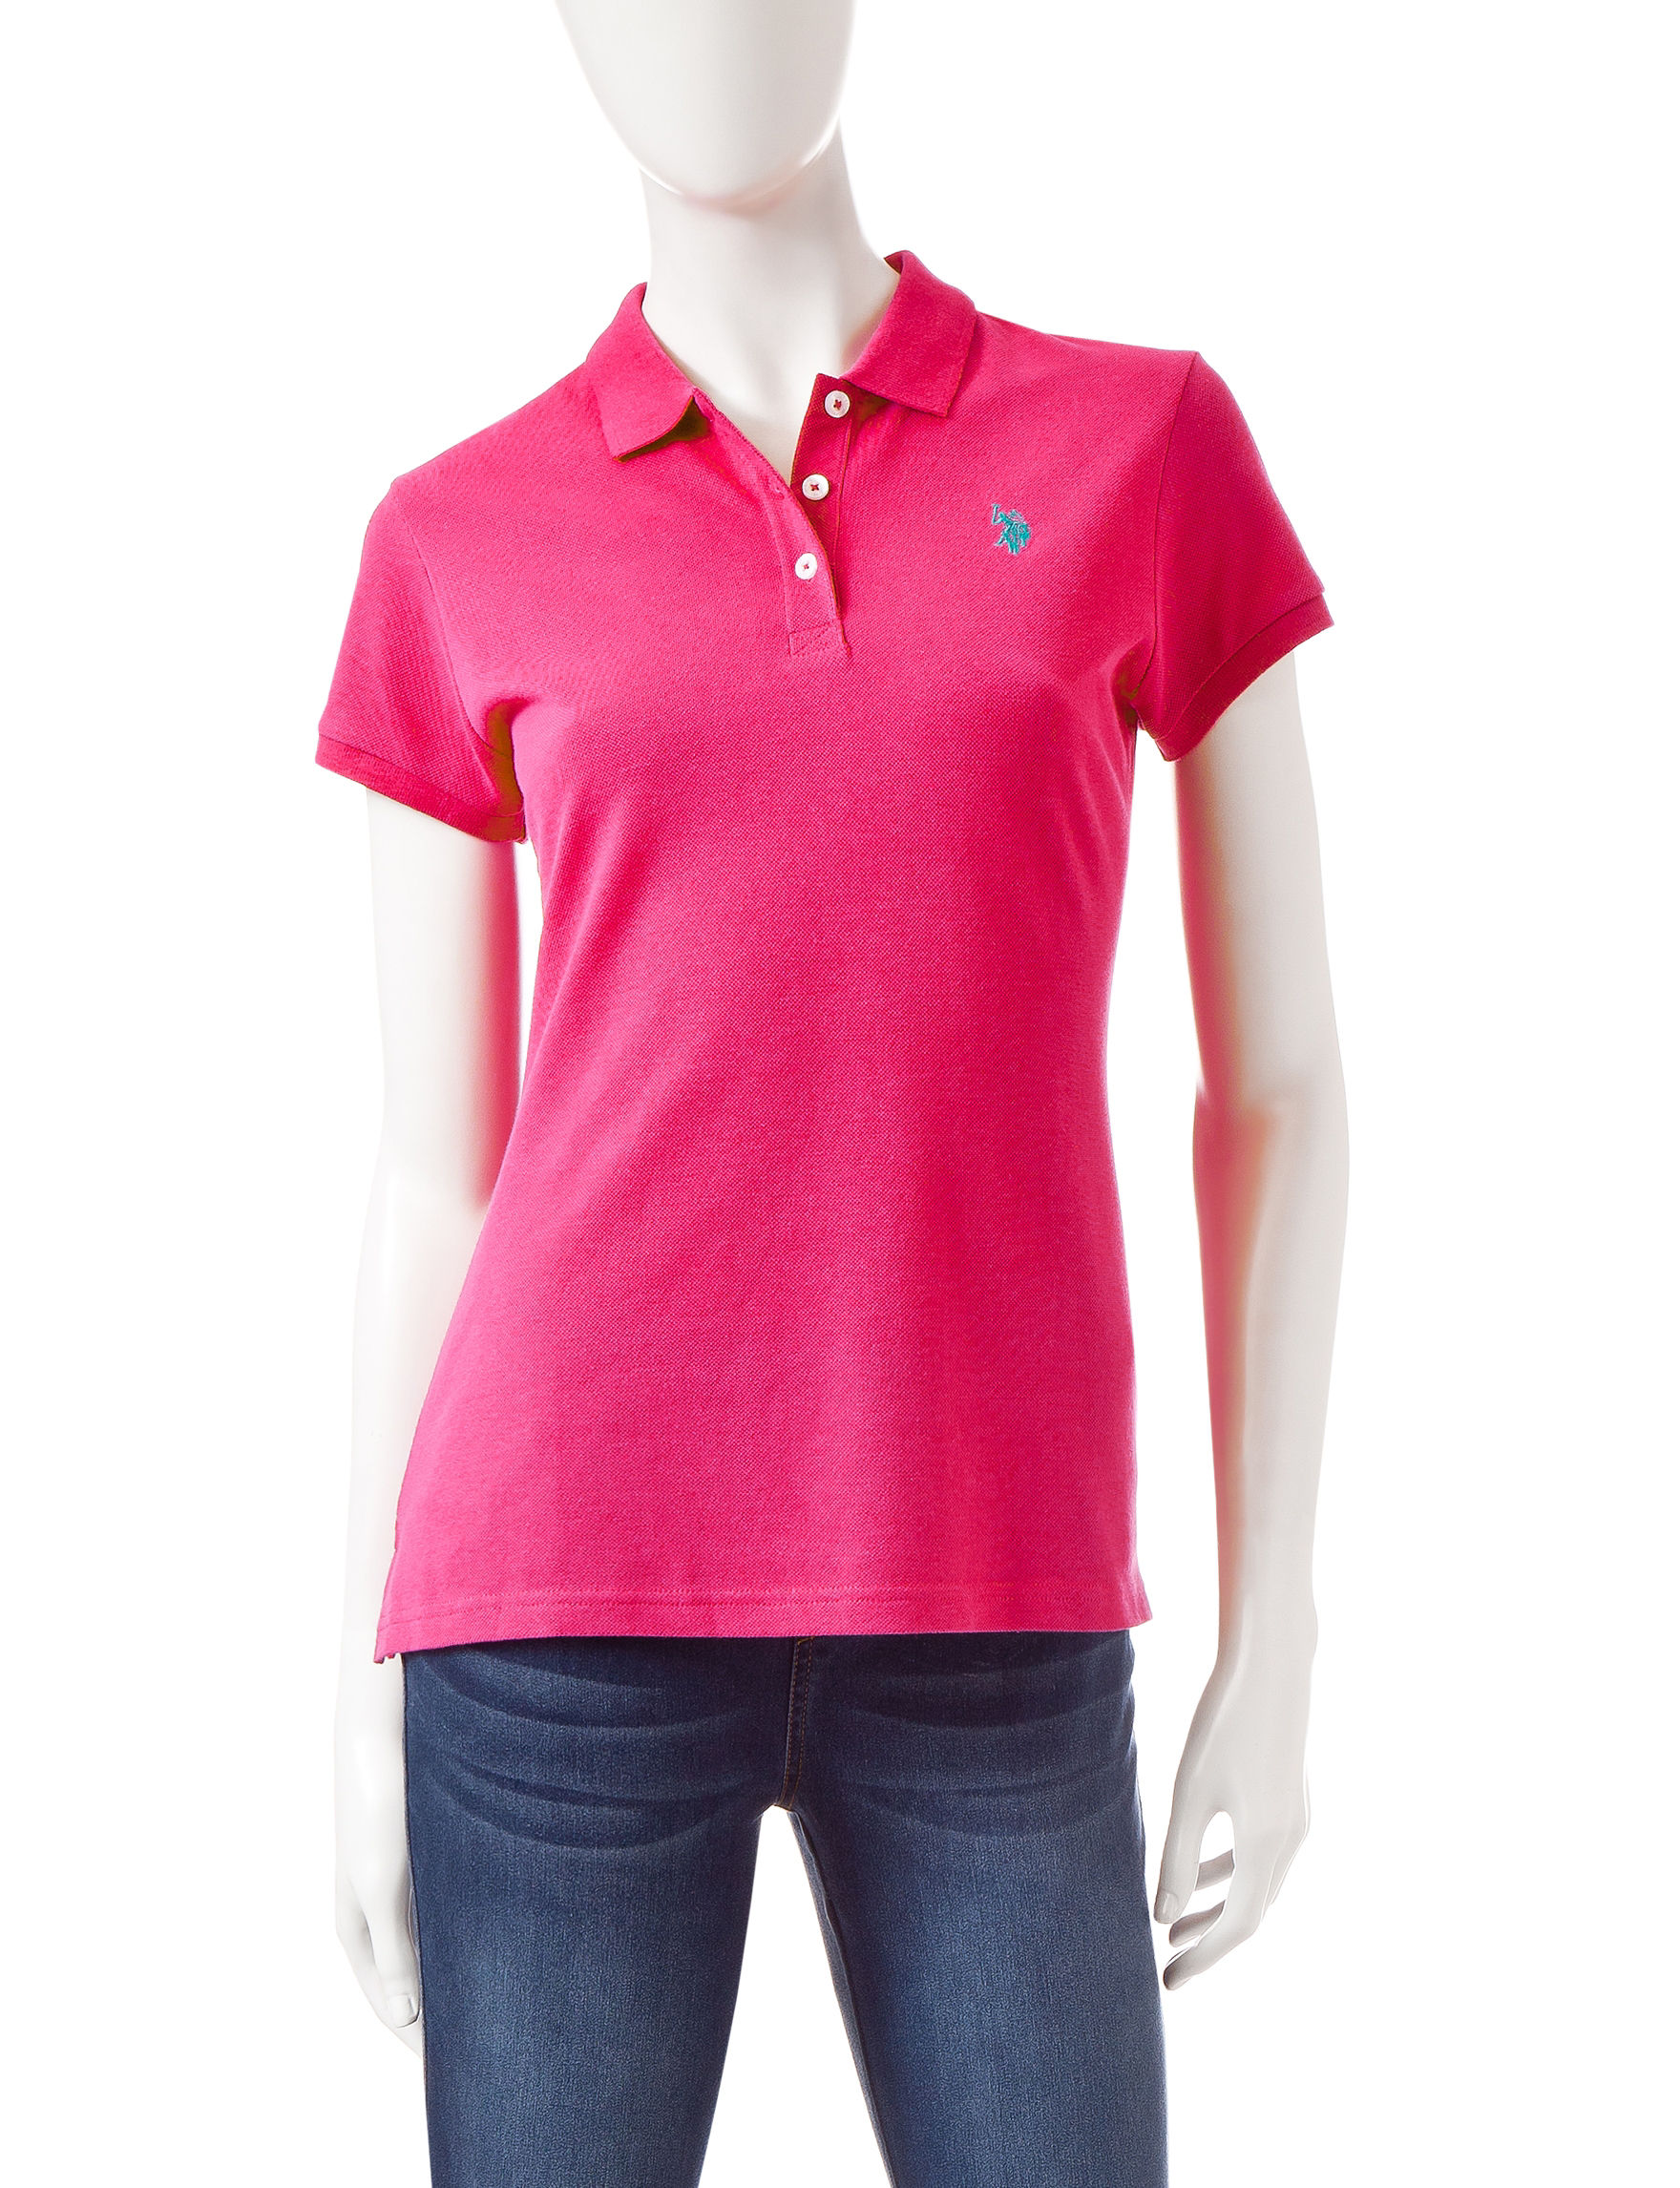 U.S. Polo Assn. Dark Pink Shirts & Blouses